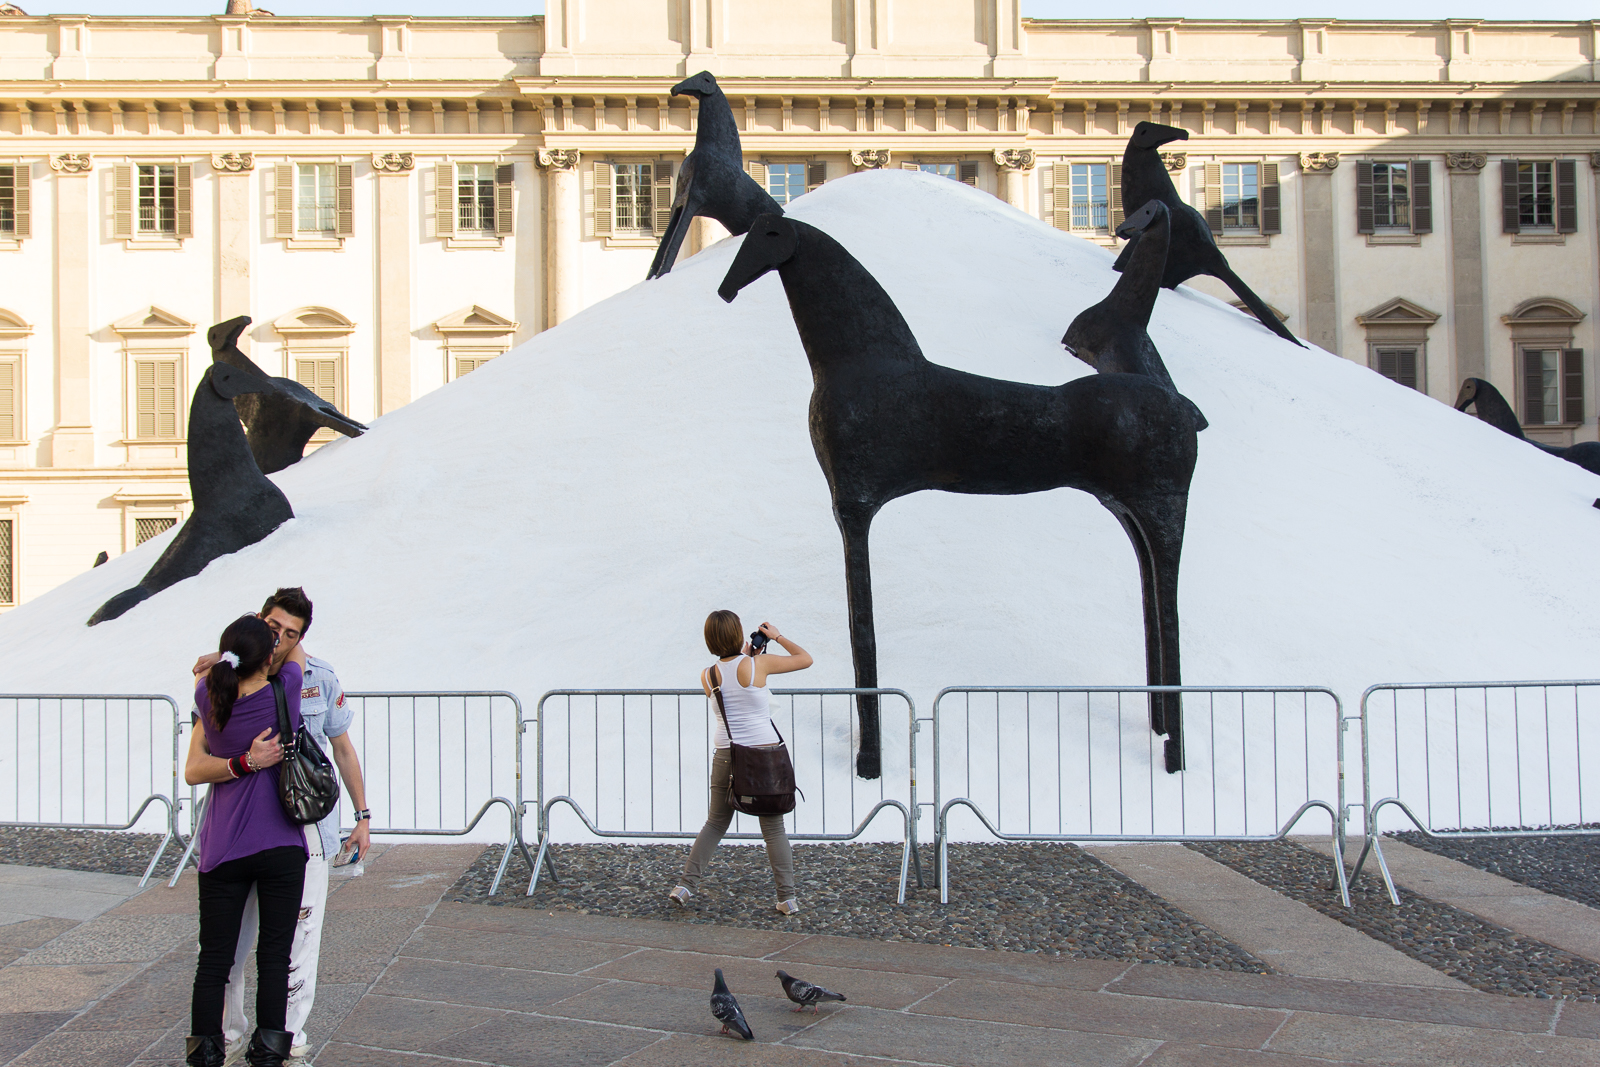 Mountains of Salt (Montagne di Sale) by Mimmo Paladino (2012)